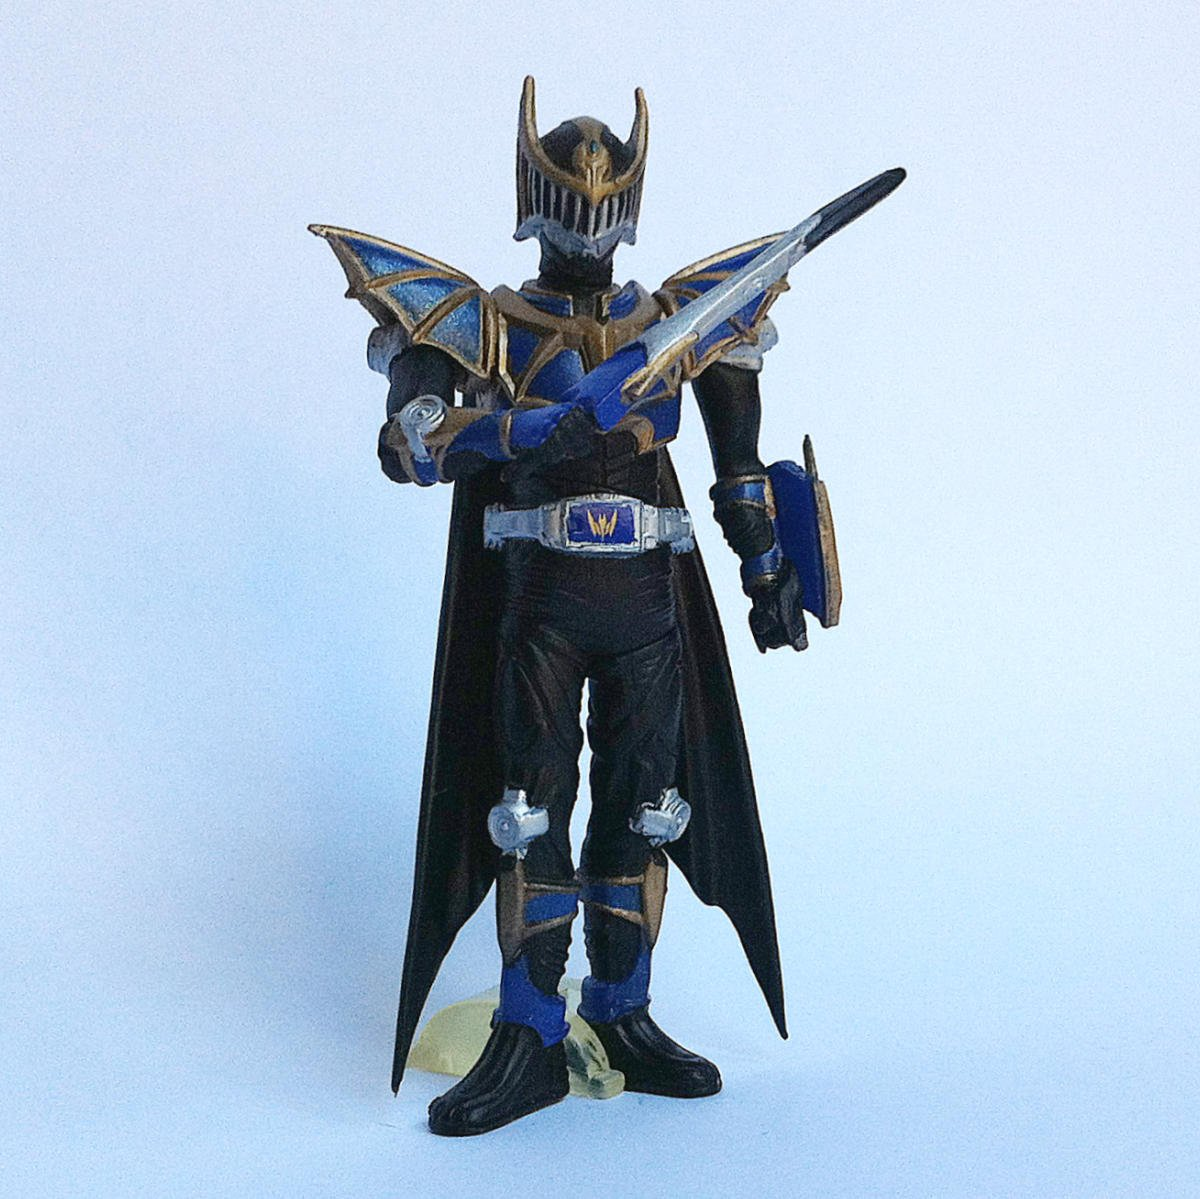 Kamen Rider Knight Survive from Kamen Rider Action Pose by Bandai